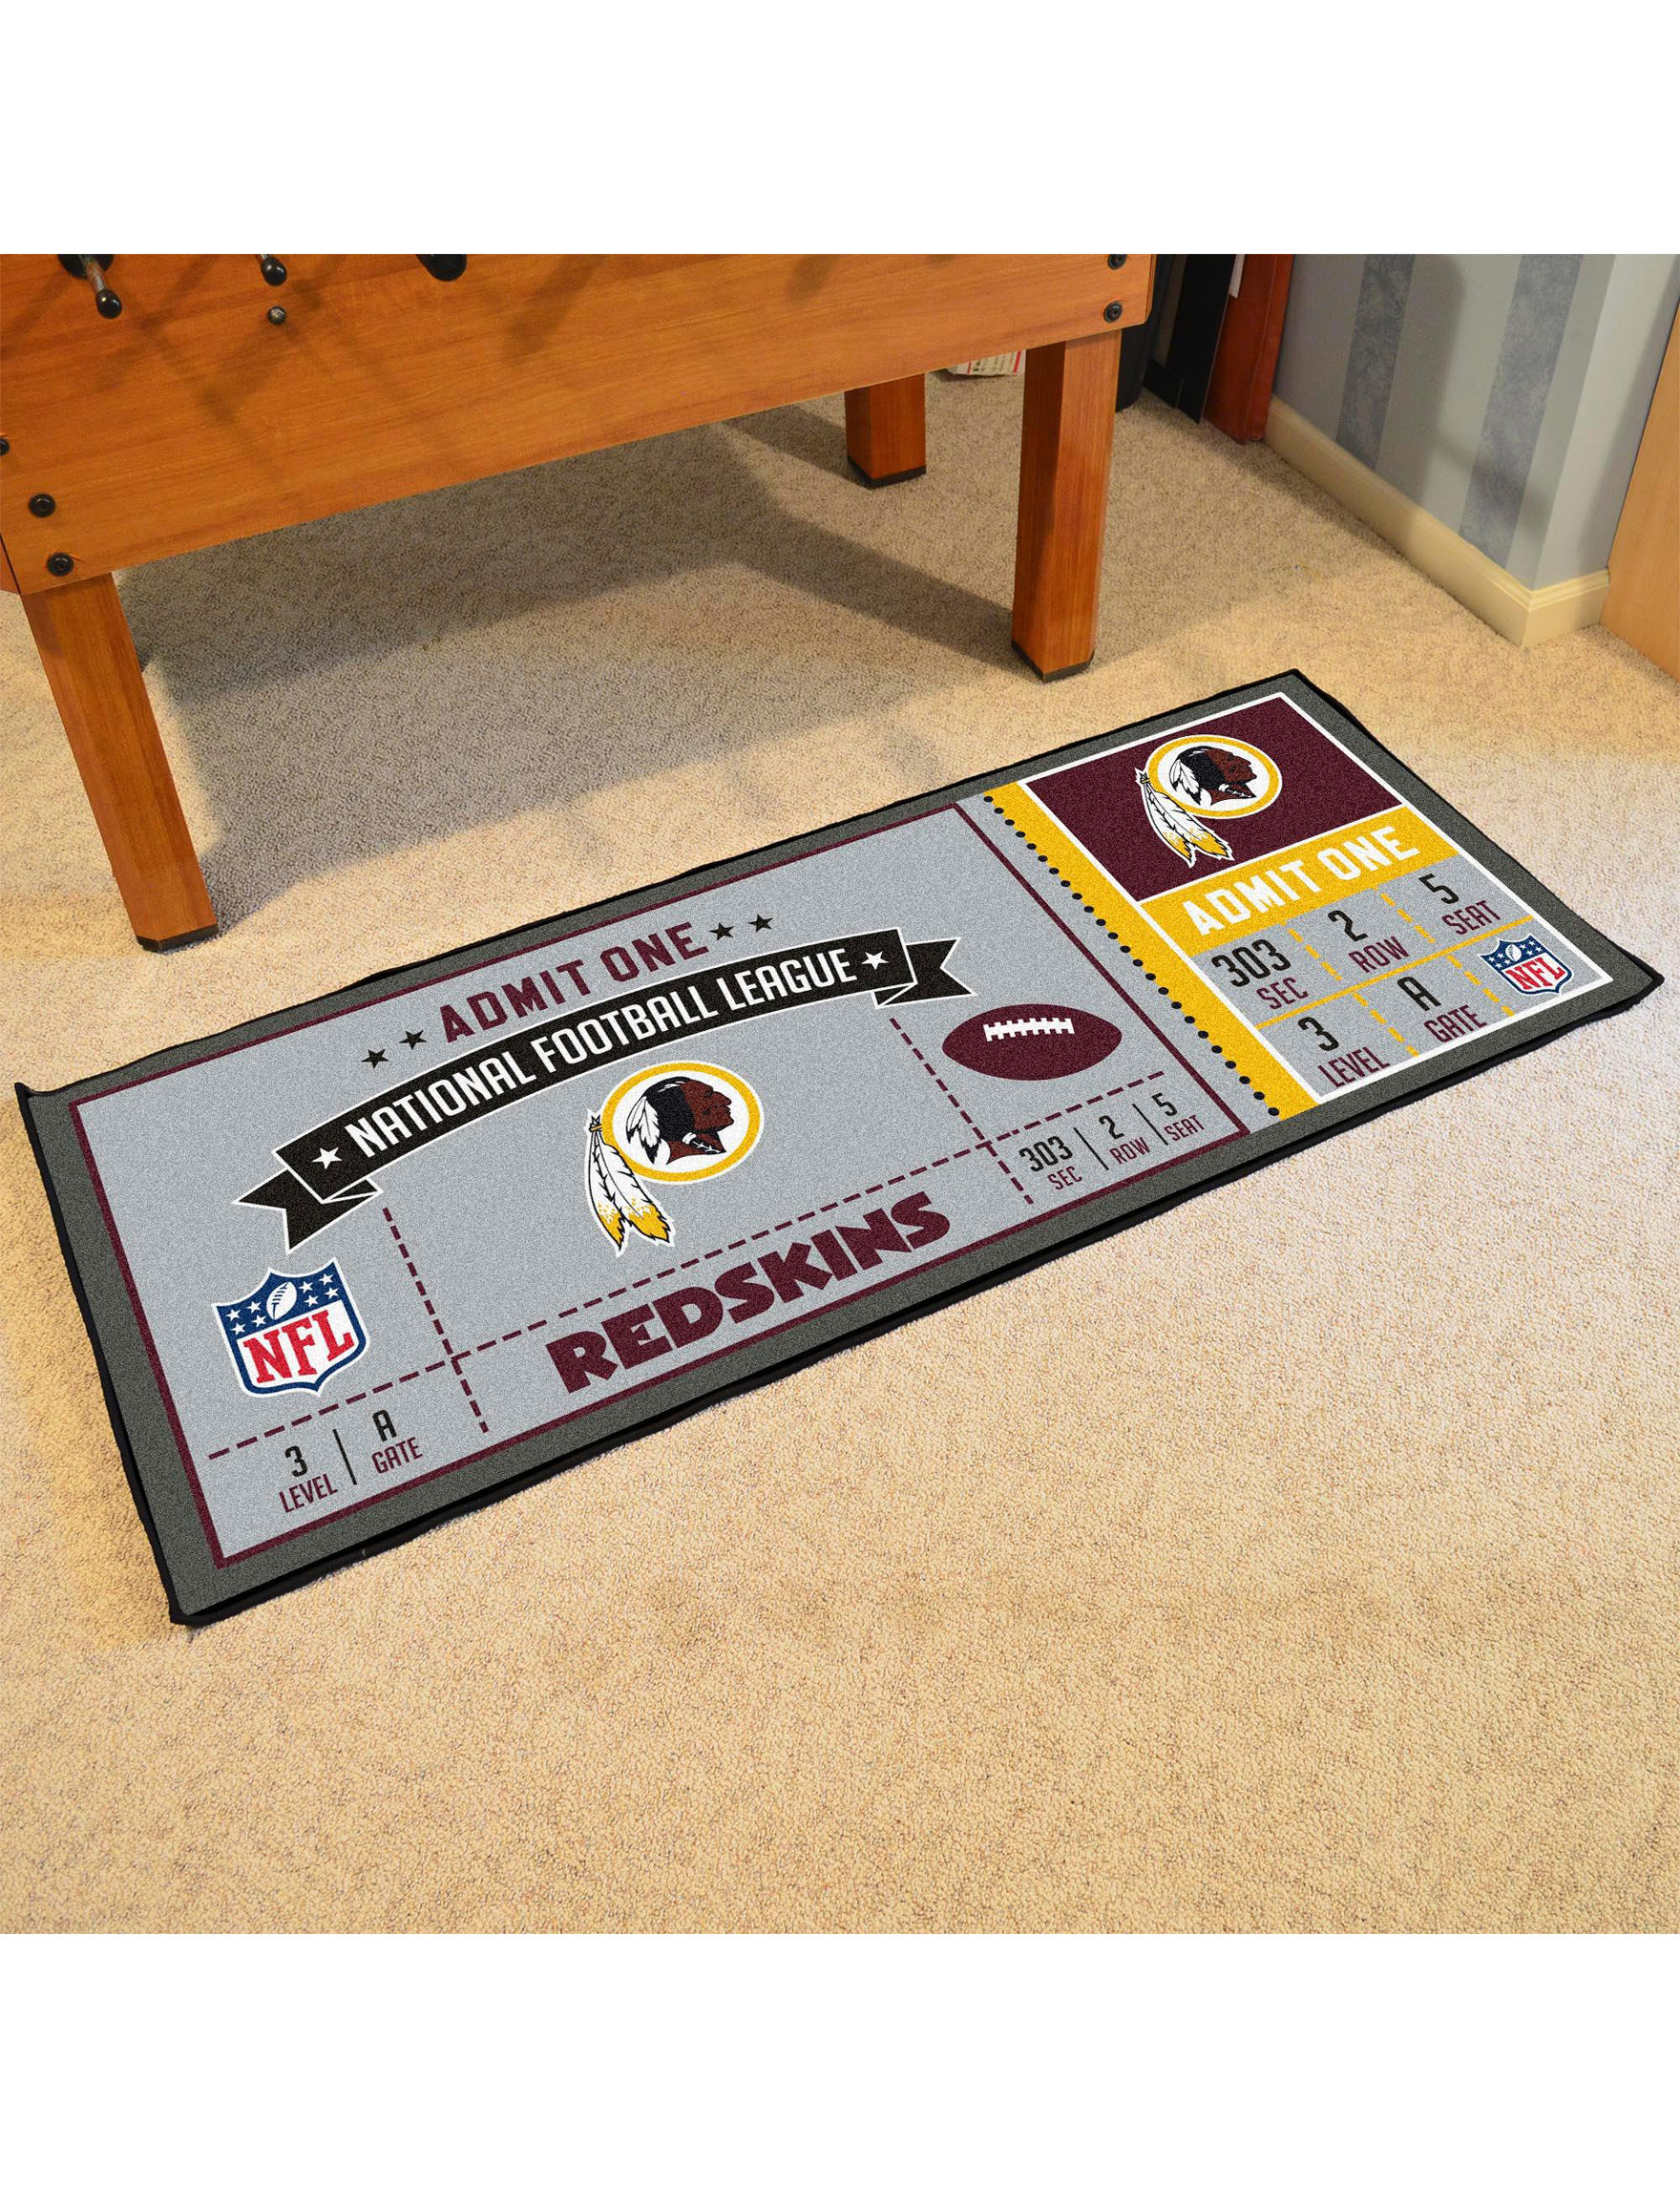 Fanmats Red / Gold Runners Rugs